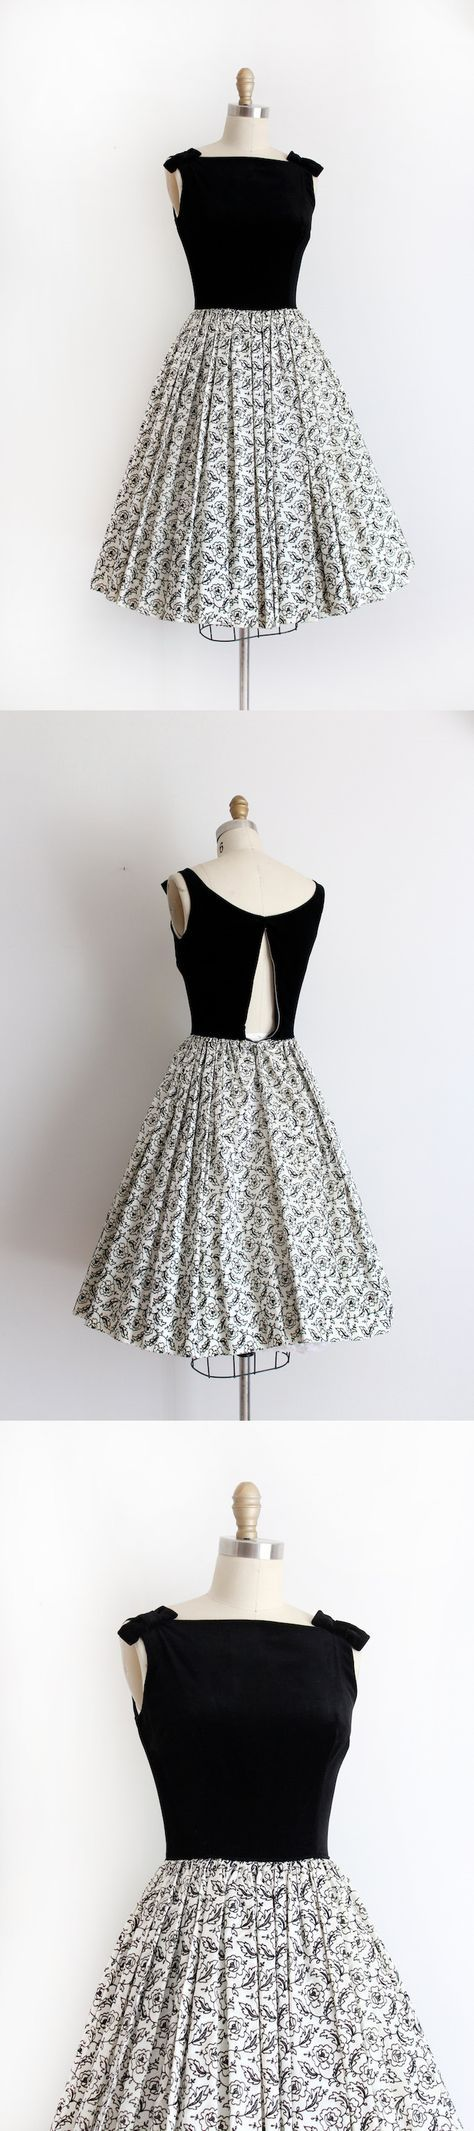 Party dress from the late 1950s. This dress features a black velvet bodice with cute bows over the shoulders, a fitted waistline, and a full skirt in acetate with velvet. Label: Candy Jones, California; metal zip down back. B32W22L41in. €67,88